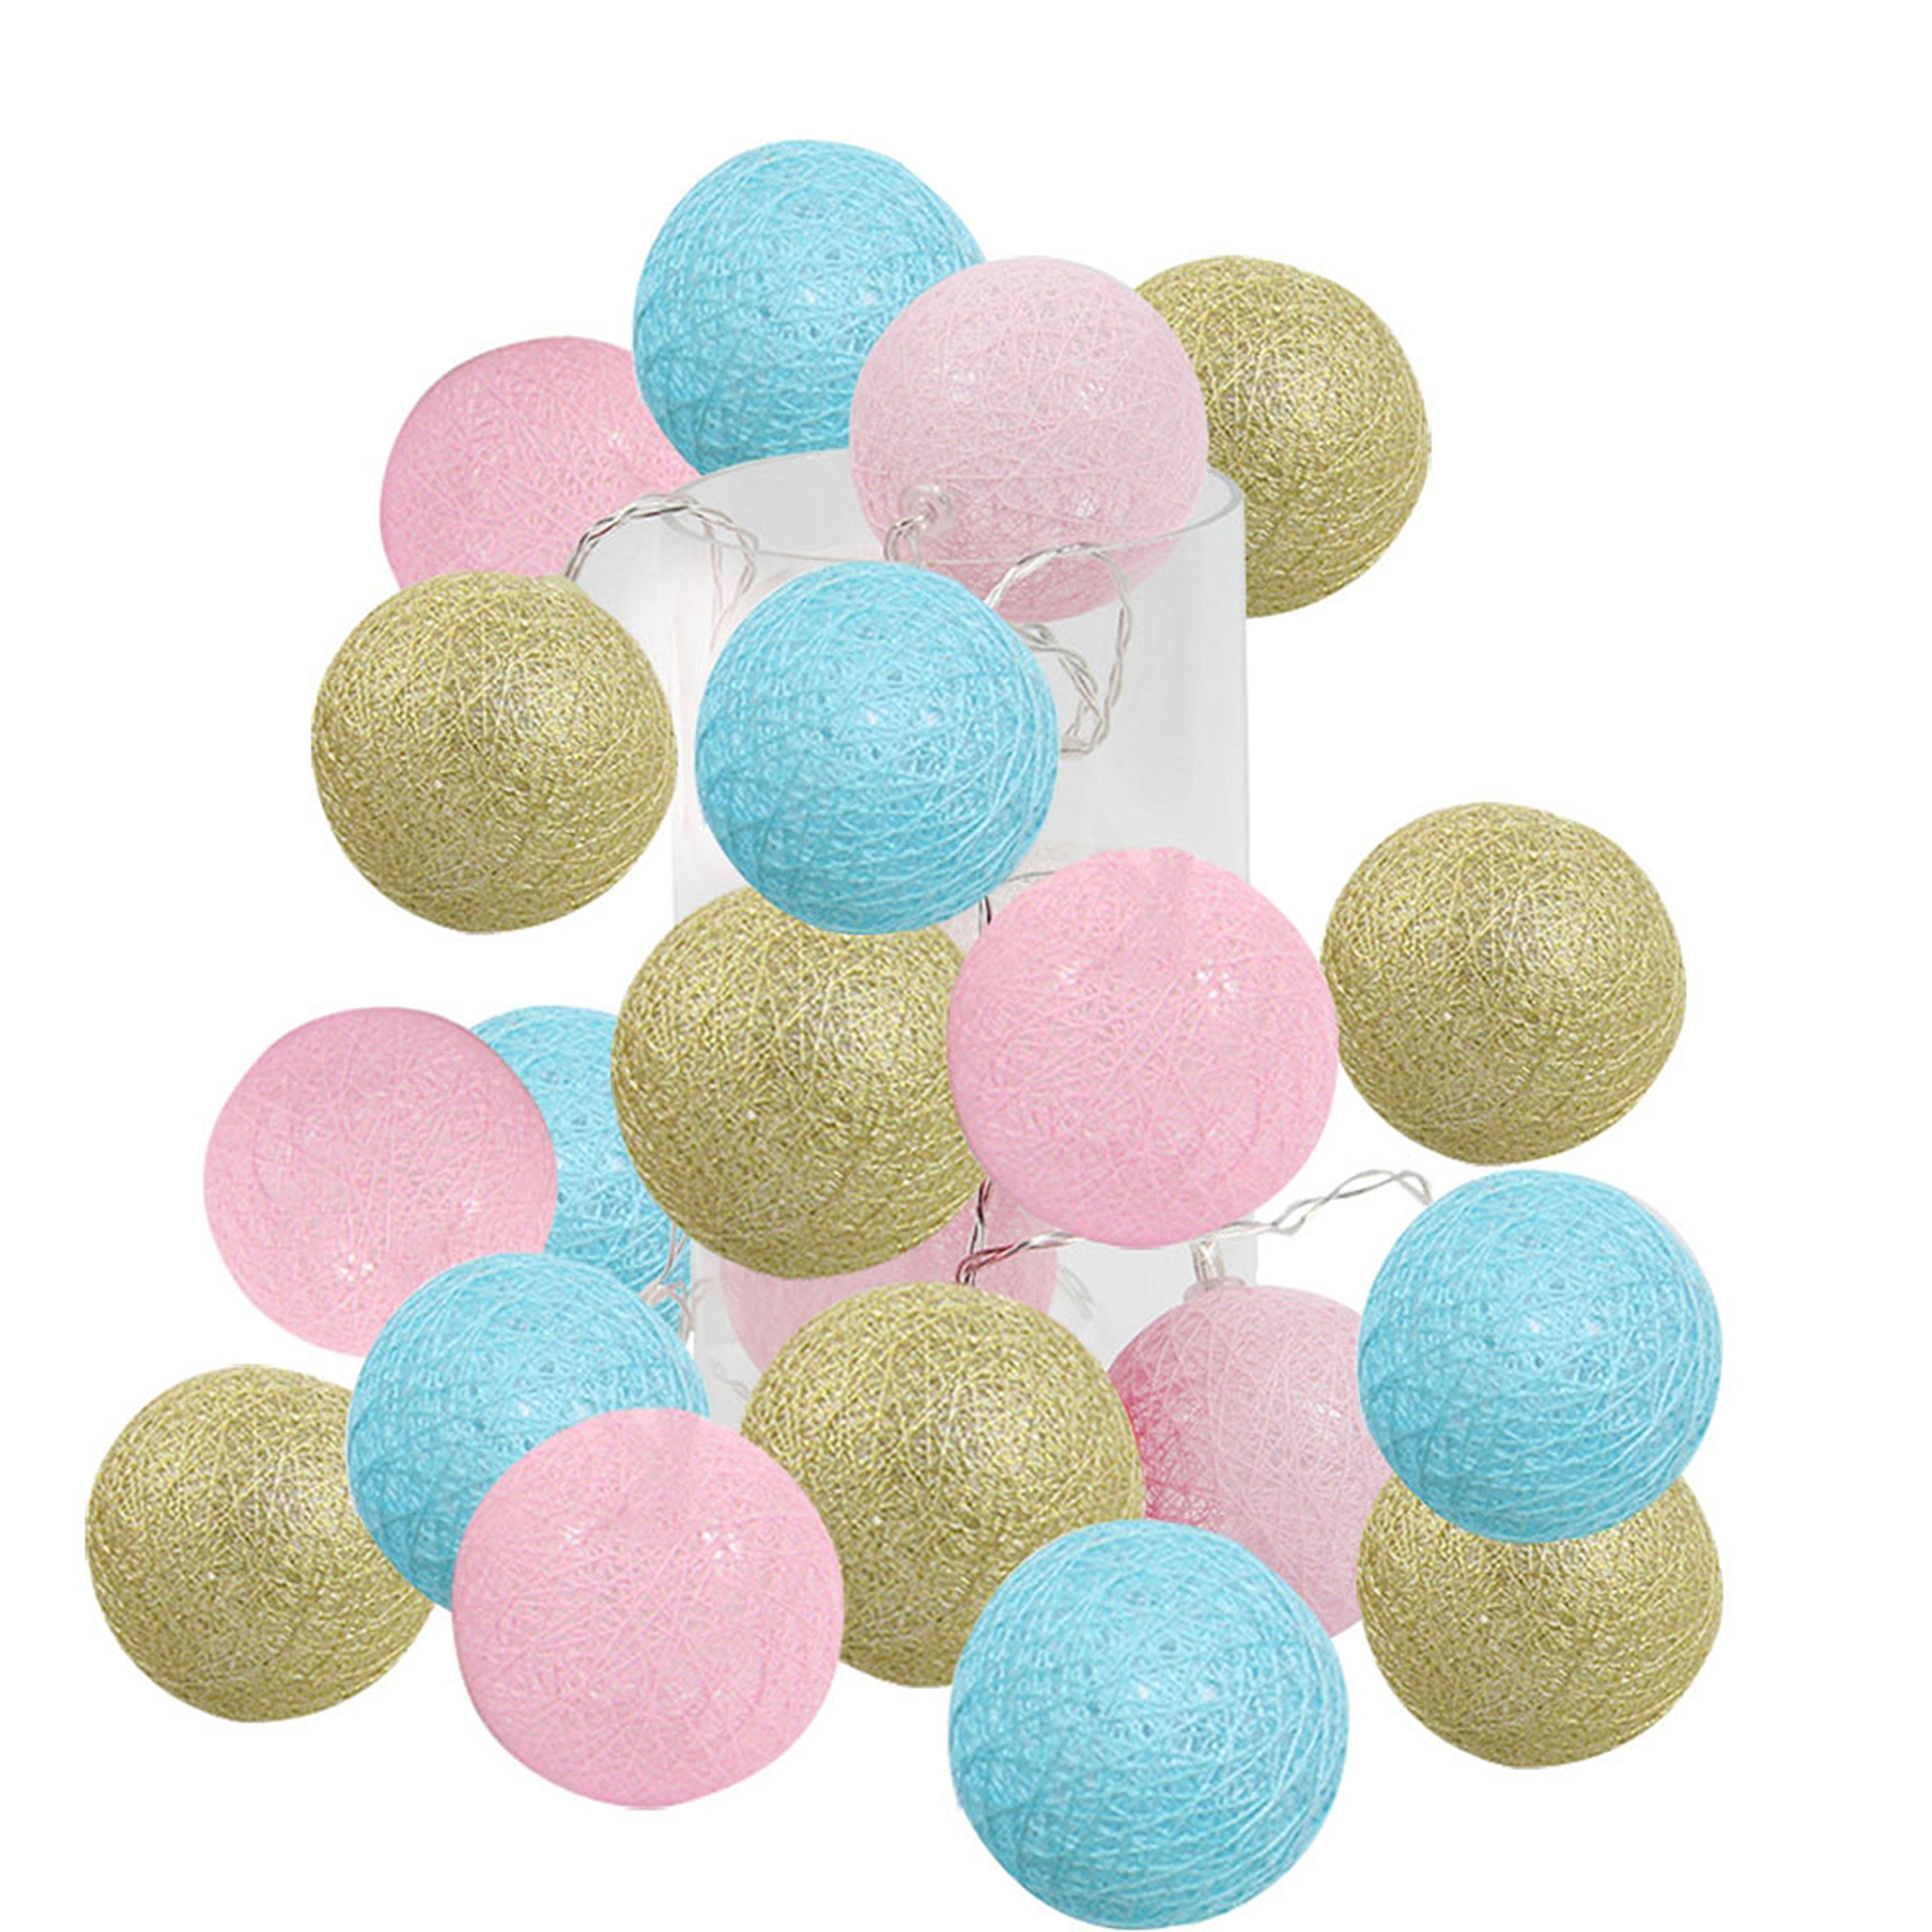 2.5m 20 LED Gender Reveal Party Supplies Boy or Girl Baby Shower Decorations Gold Pink Baby Blue Cotton Balls String Lights Battery Operated Christmas LED Garland Party Decorative Lamp